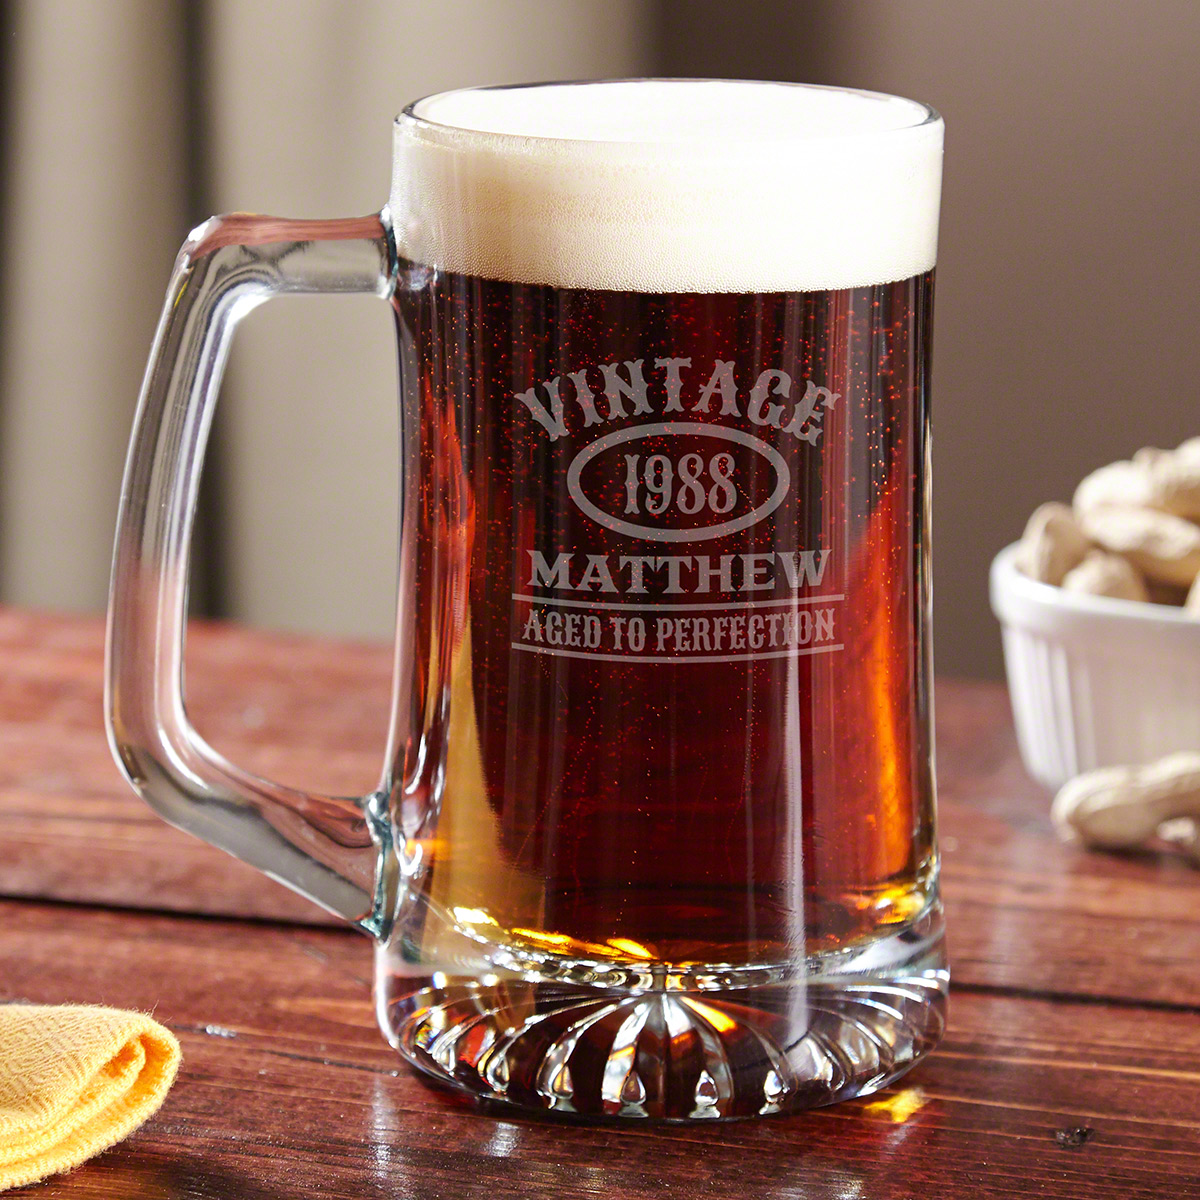 Since birthdays only come around once a year, you only get one chance to find the right gift. Impress that special someone with our Aged to Perfection personalized beer mug. These custom glass mugs are thick and durable with a traditionally styled wide b #mug